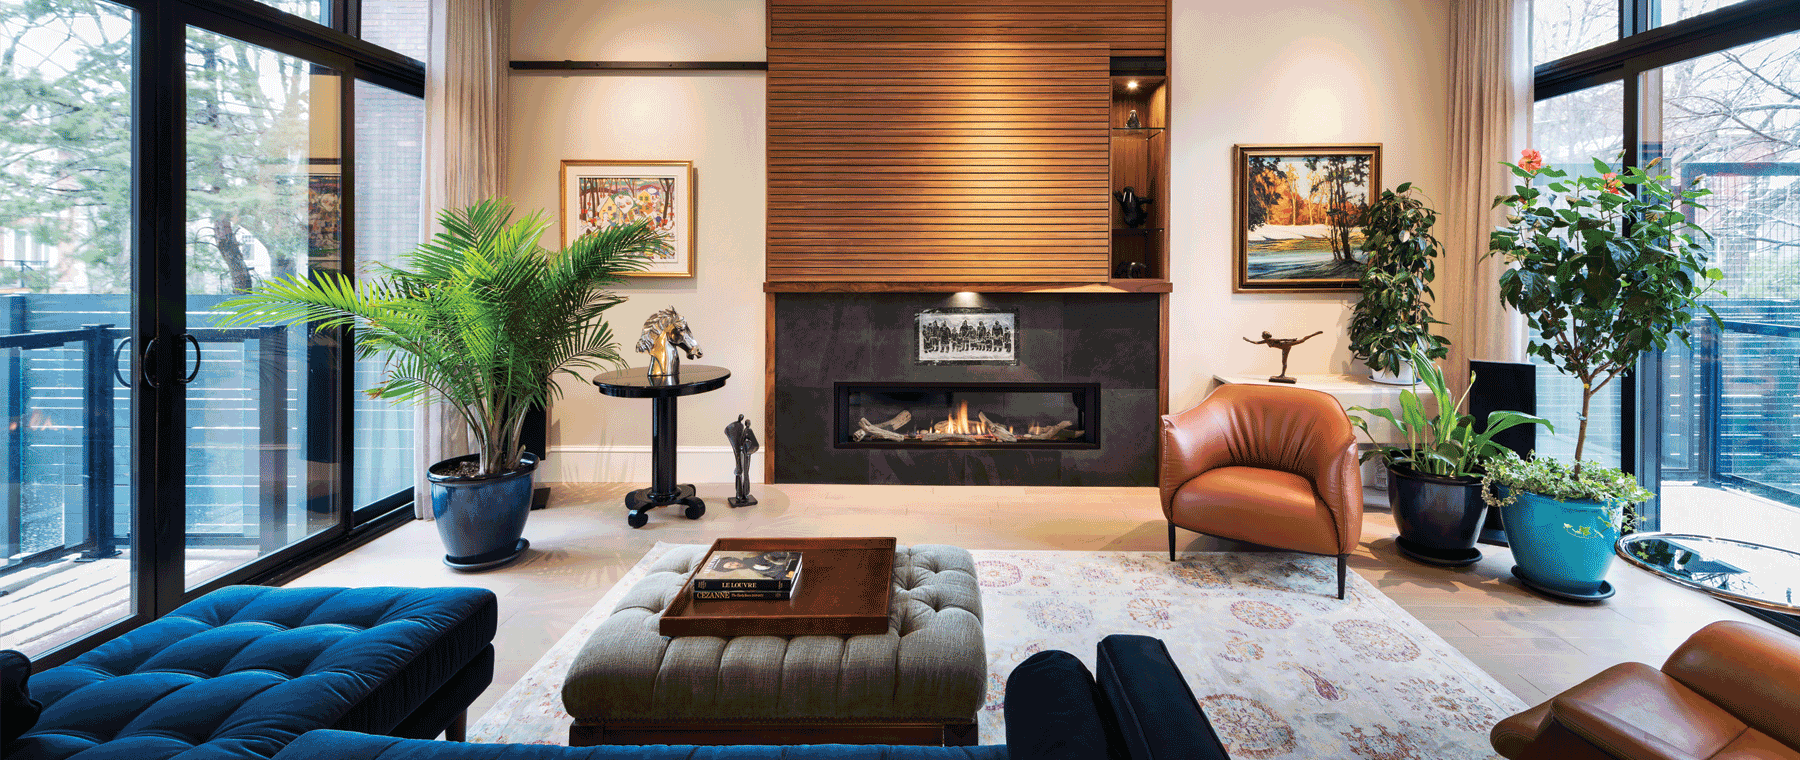 Fireplaces We Love: Two great spaces (and how to get the look)